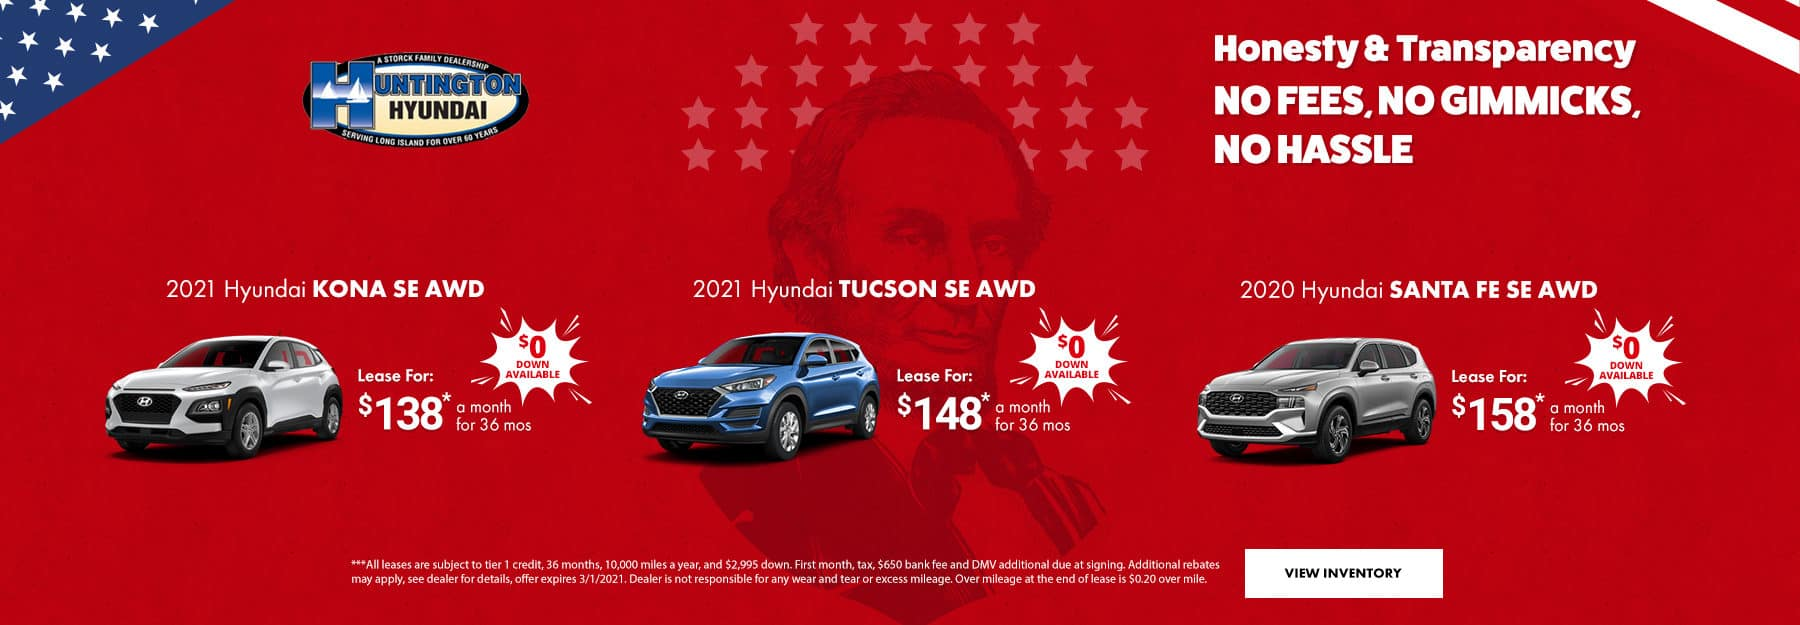 huntingtonhyundai_homepagebanner_19206